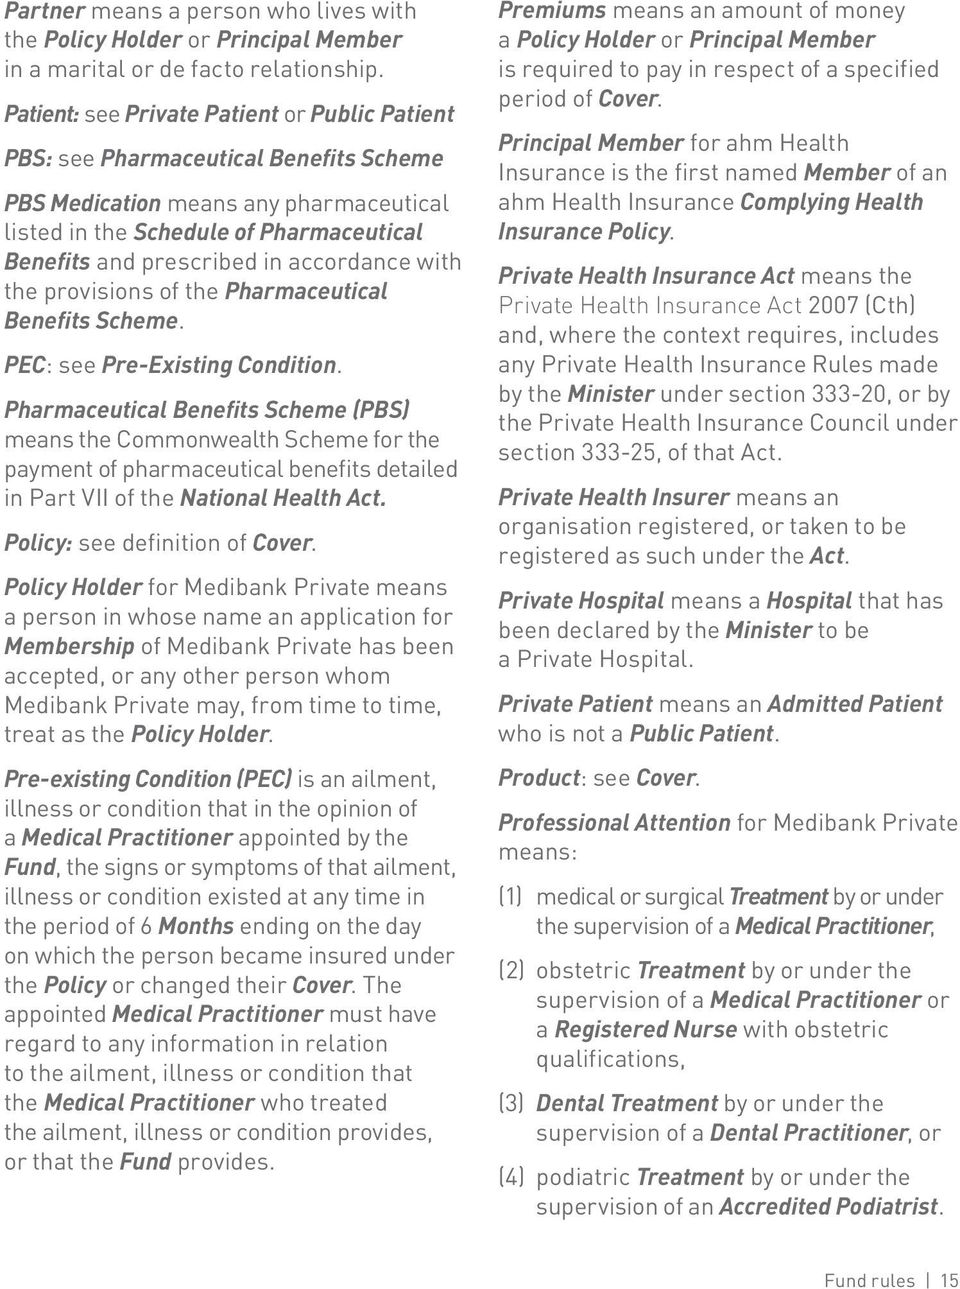 accordance with the provisions of the Pharmaceutical Benefits Scheme. PEC: see Pre-Existing Condition.